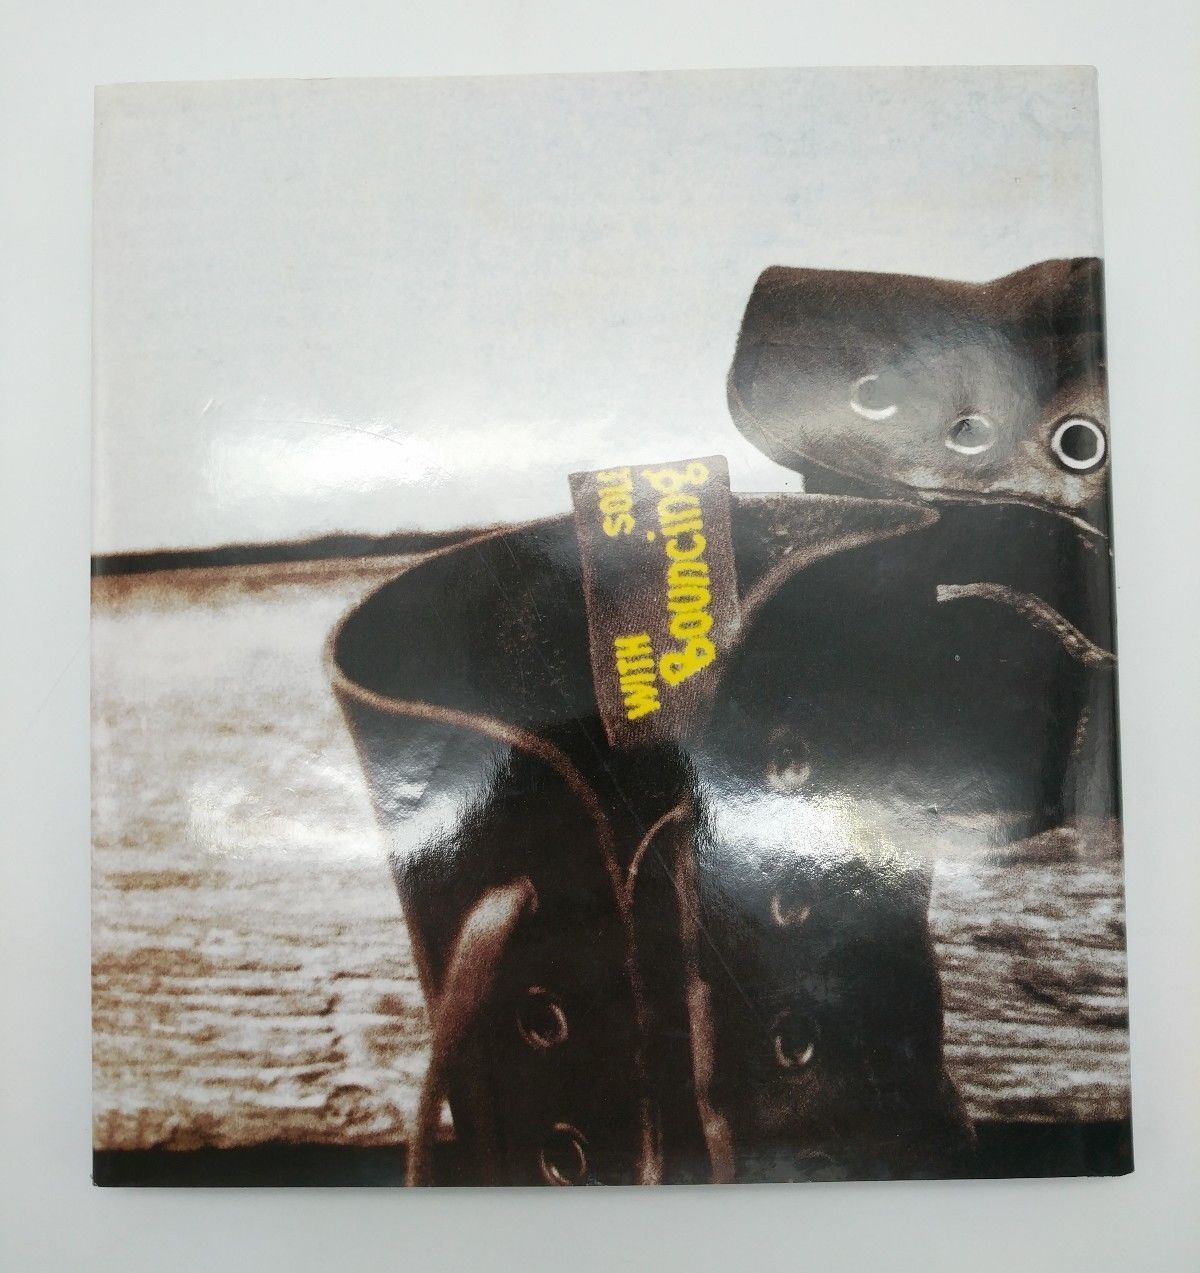 Dr Martins Air Wair Book History of Shoes Doc Martens Punk Rock Rock n Roll image 2